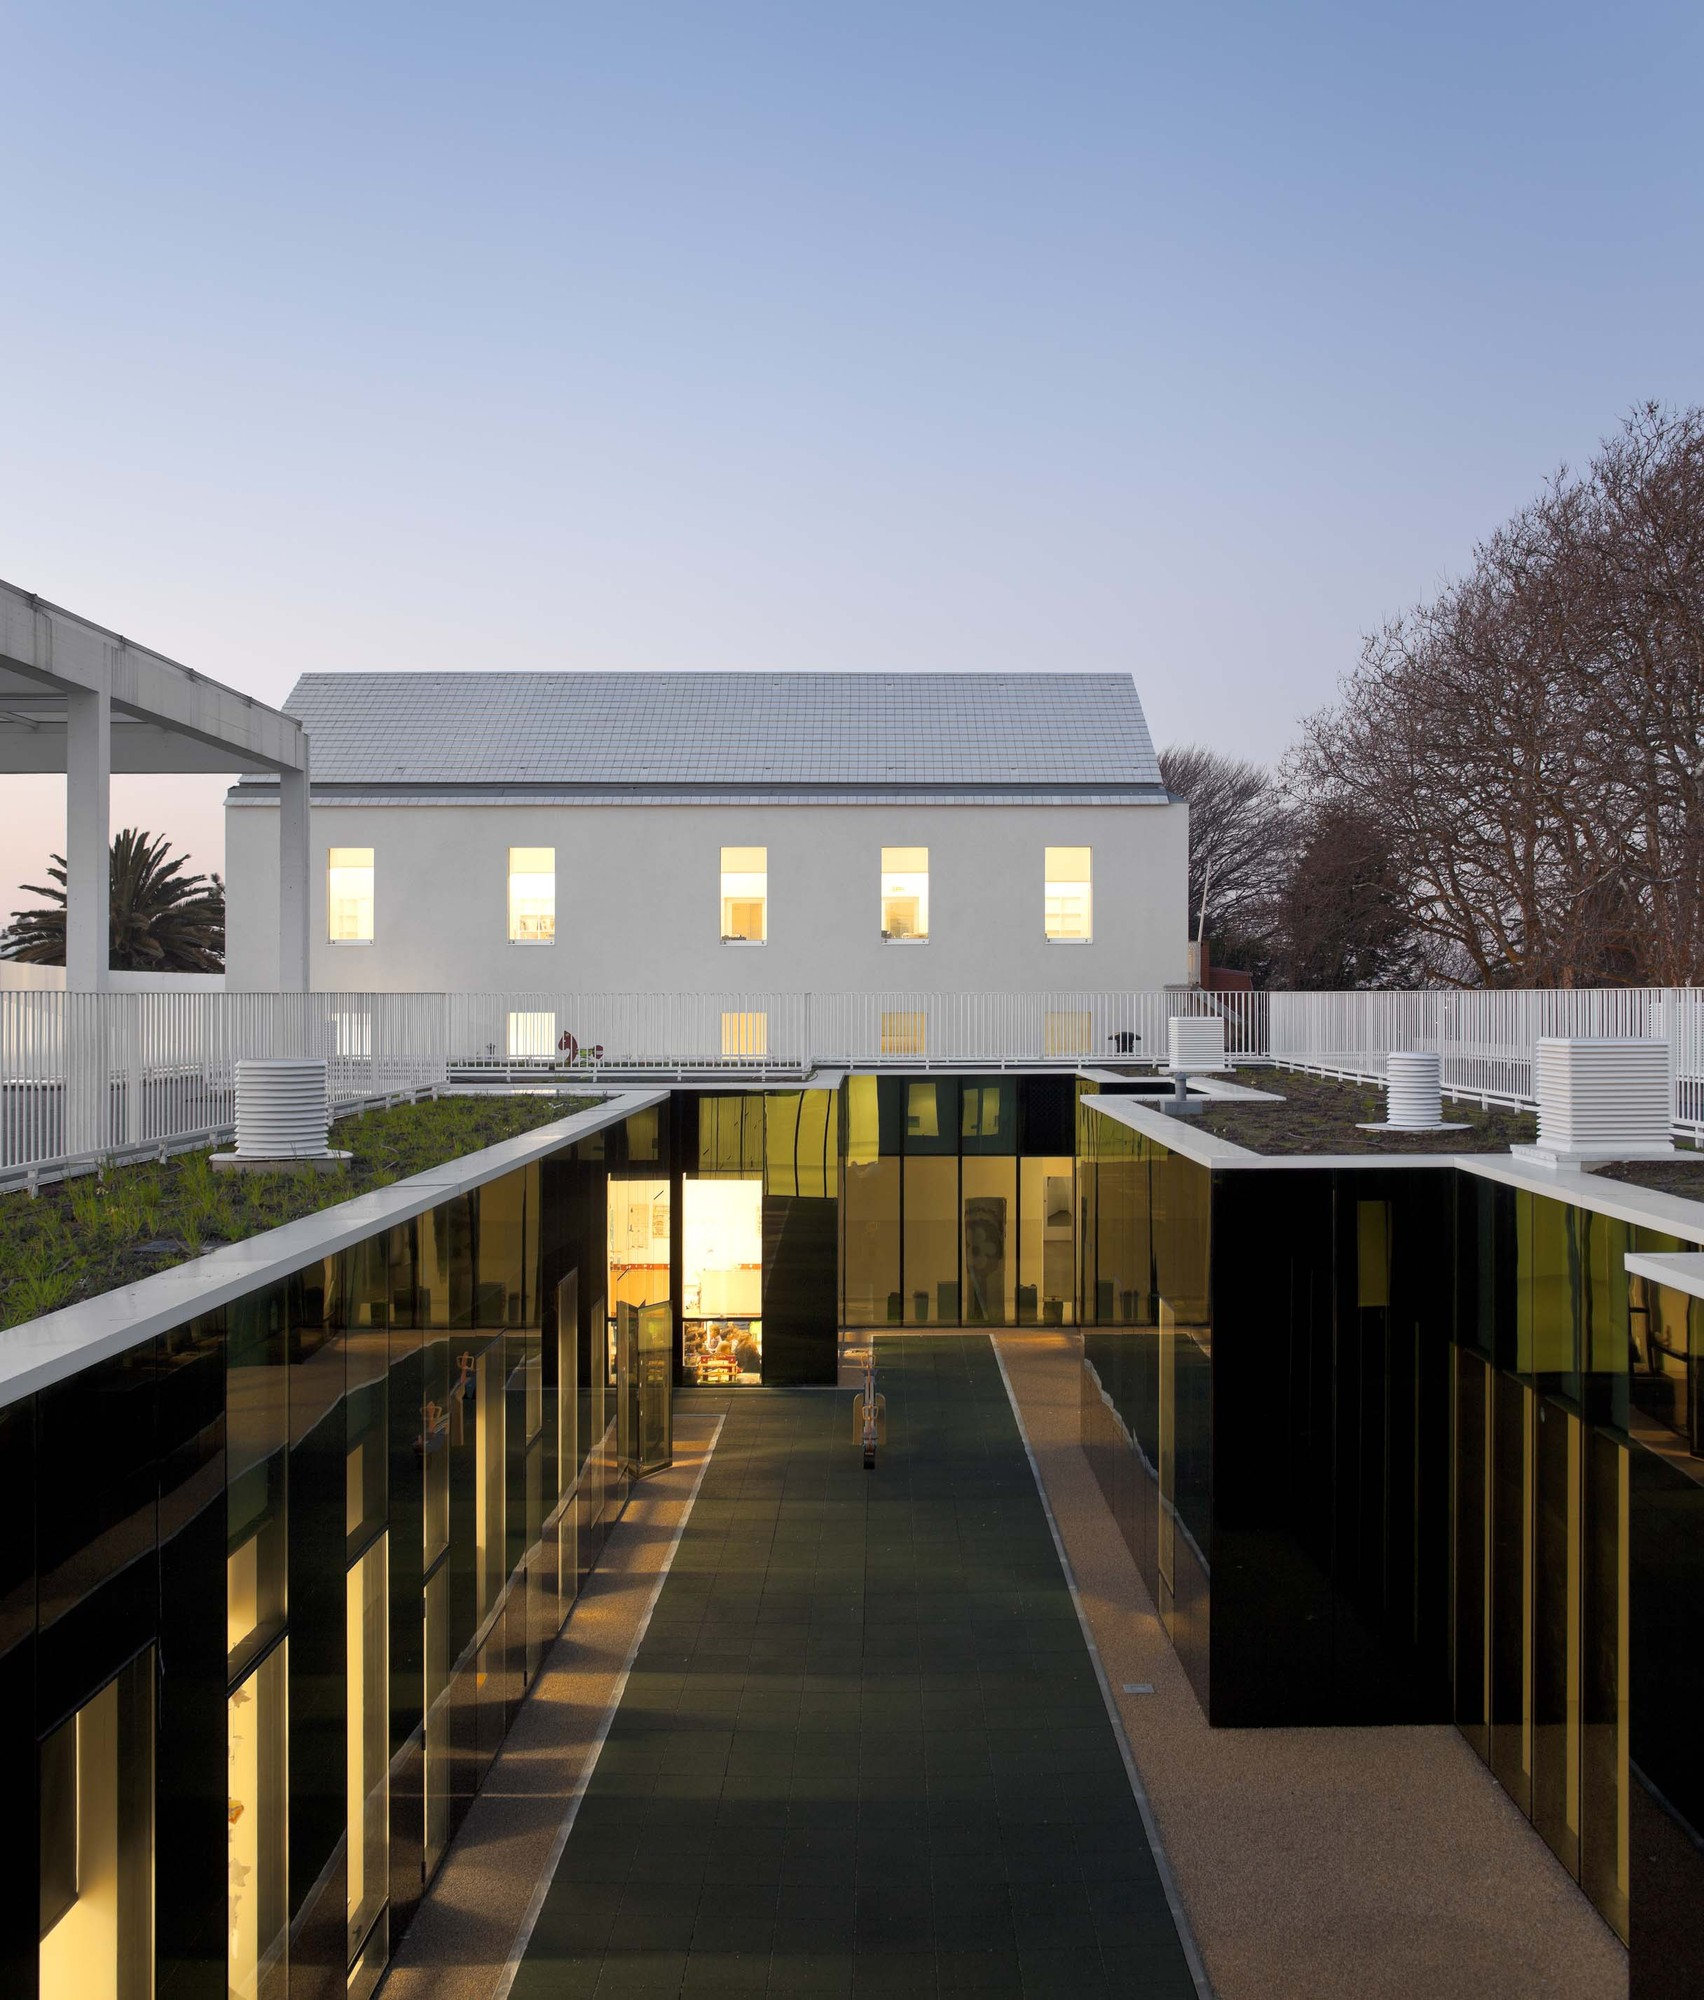 Center School S.Miguel de Nevogilde / AVA Architects, © FG+SG